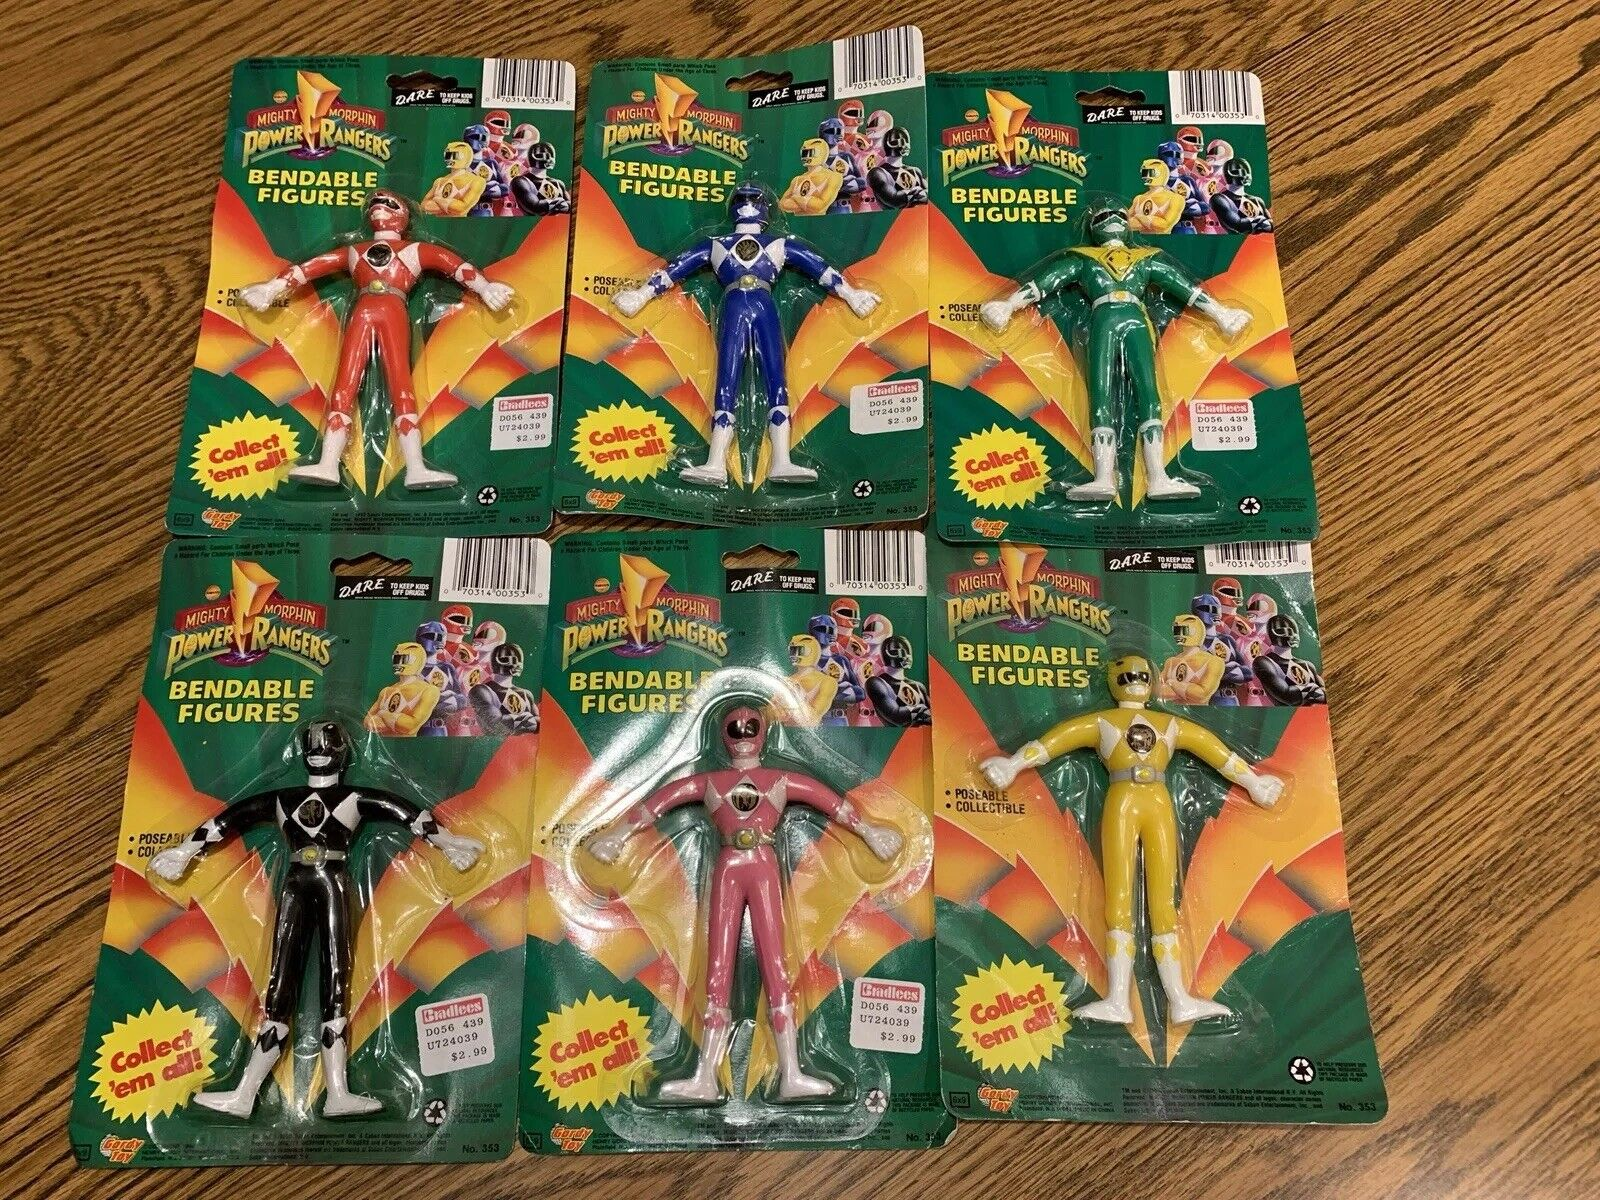 1994 Power Rangers Bendable Figures - Masse of 6- Complete Set, New in Verpackungage